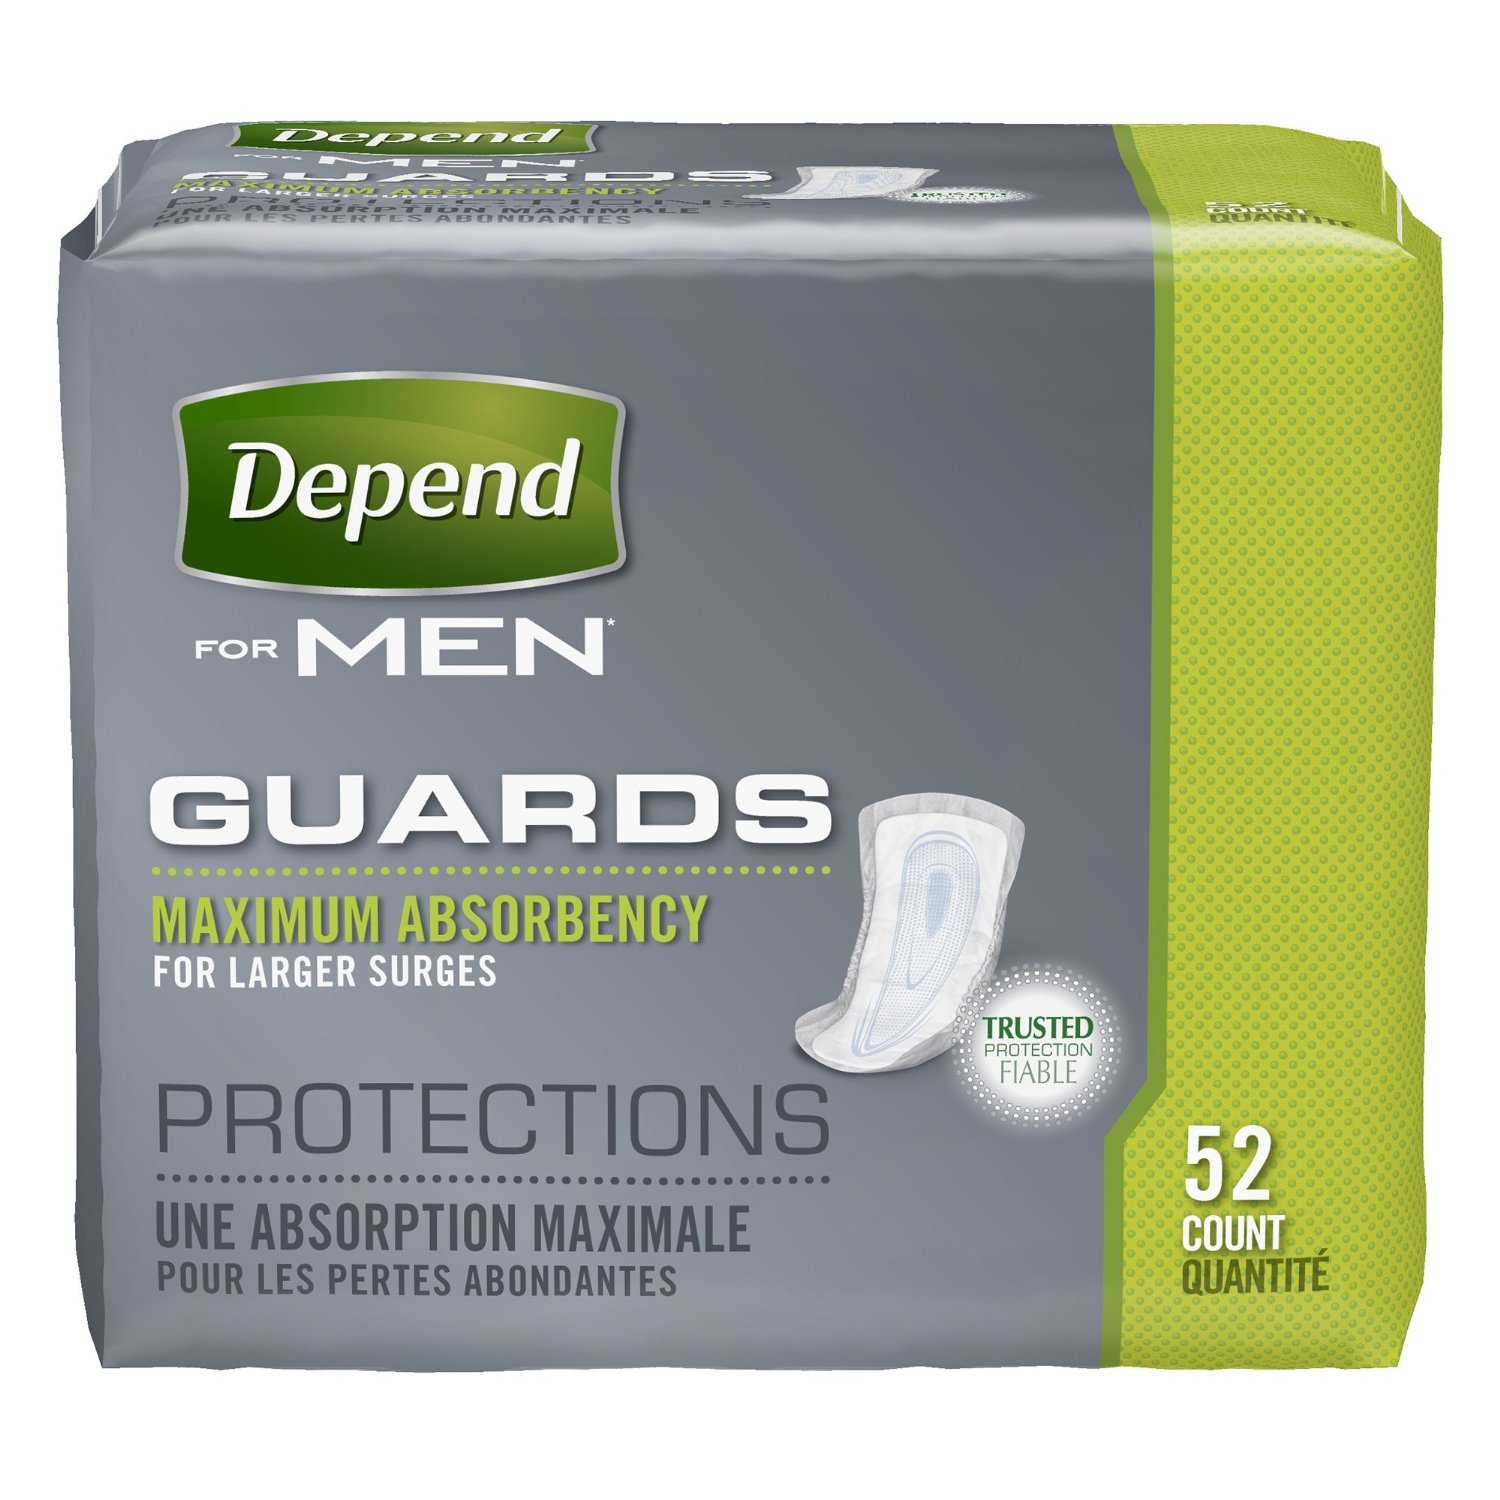 Depend Convenience Guards for Men Save Big, 104-Count Package